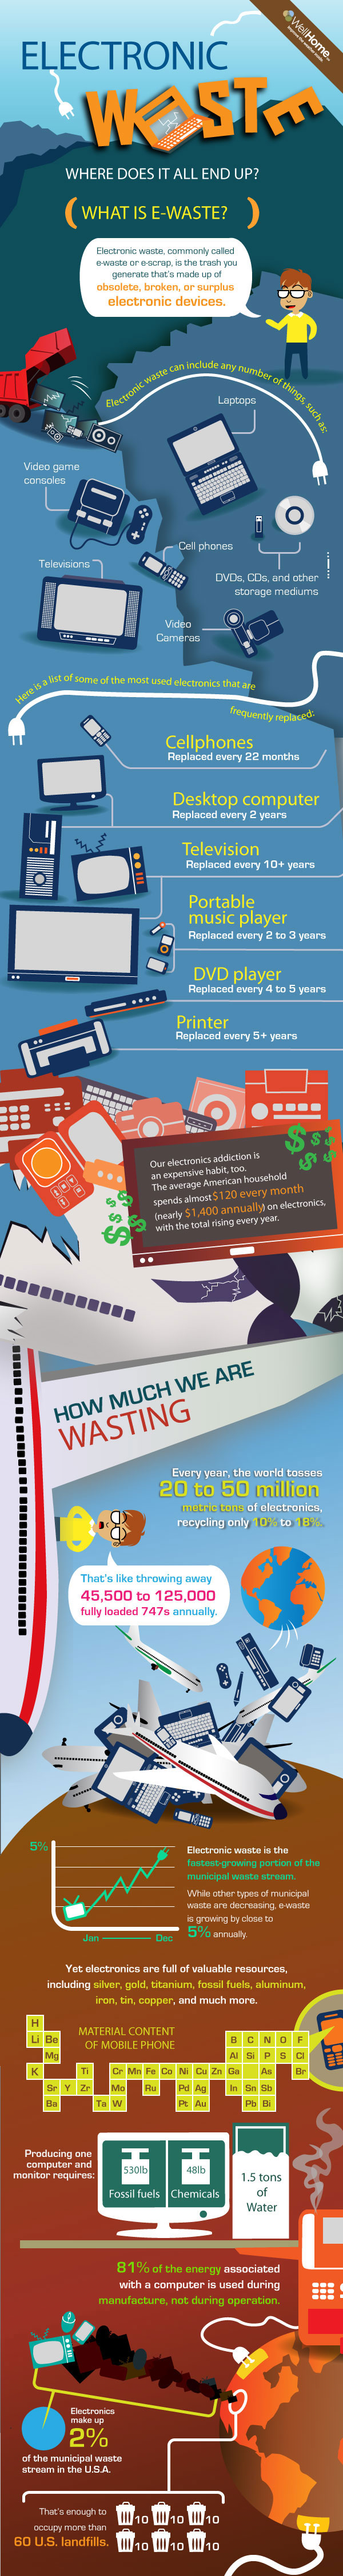 [INFOGRAPHIC] How much are we wasting?